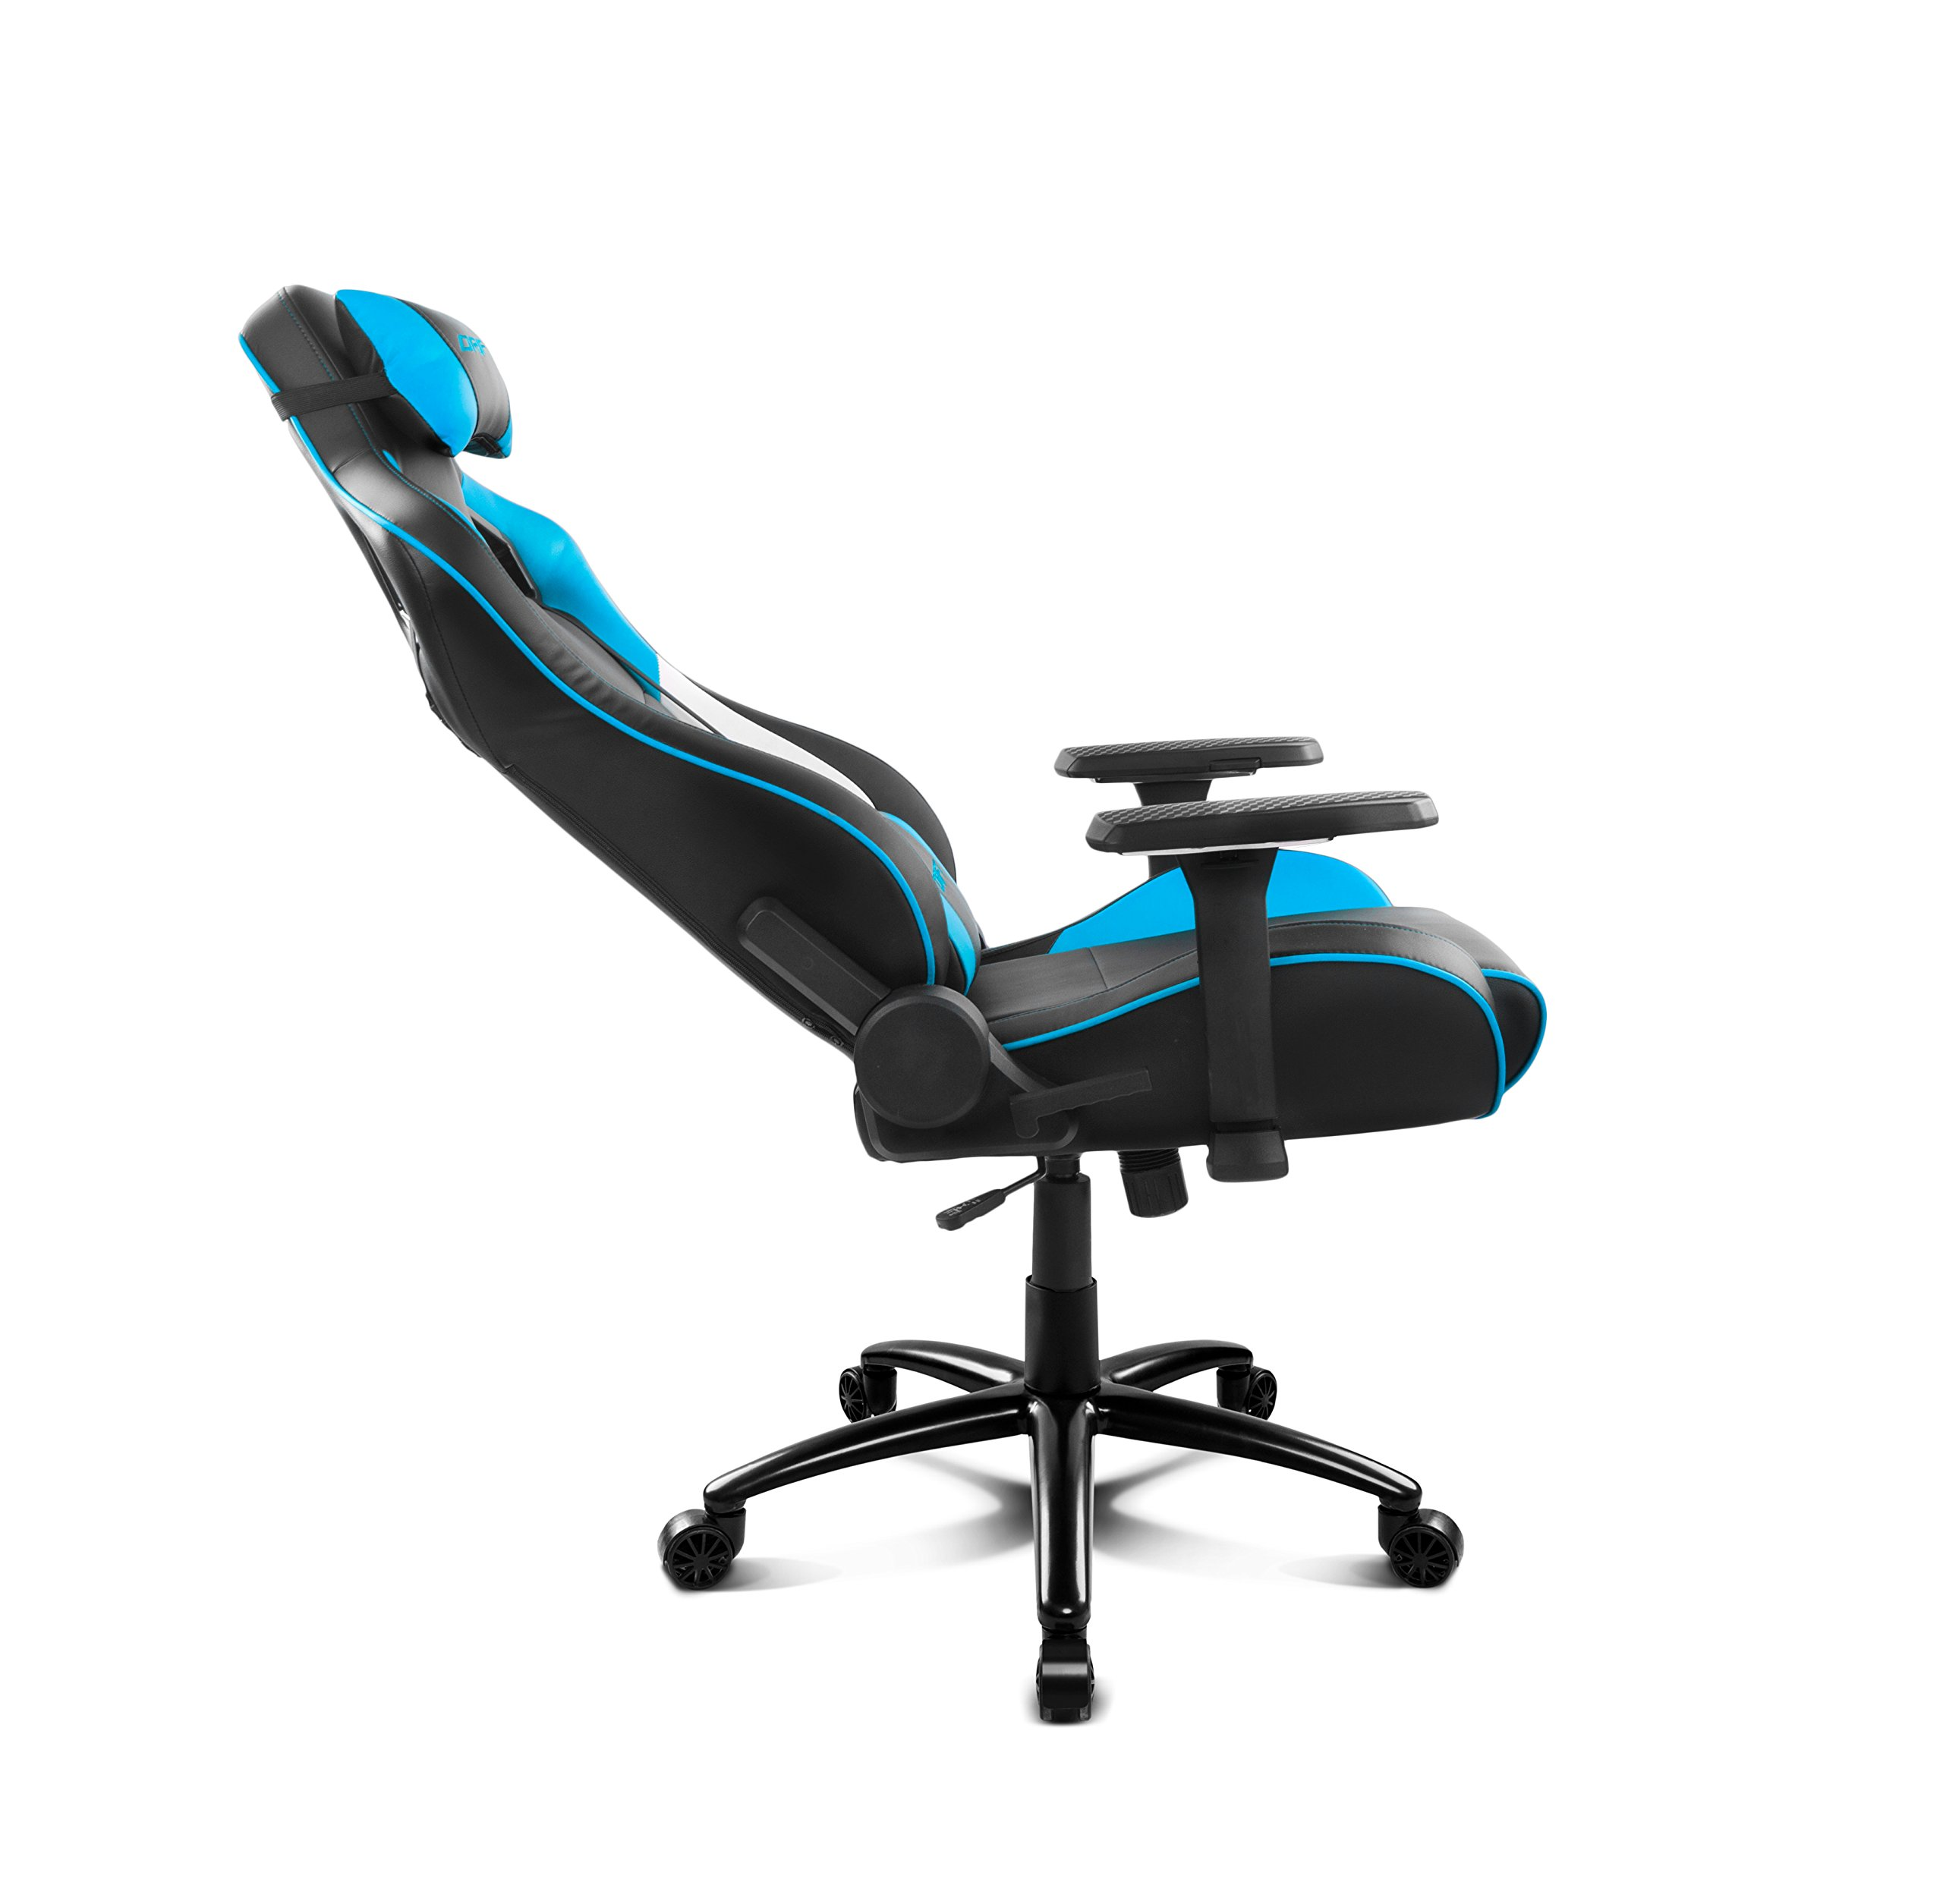 71voyEgFSOL - Drift DR400BL - Silla Gaming, Color Negro y Azul